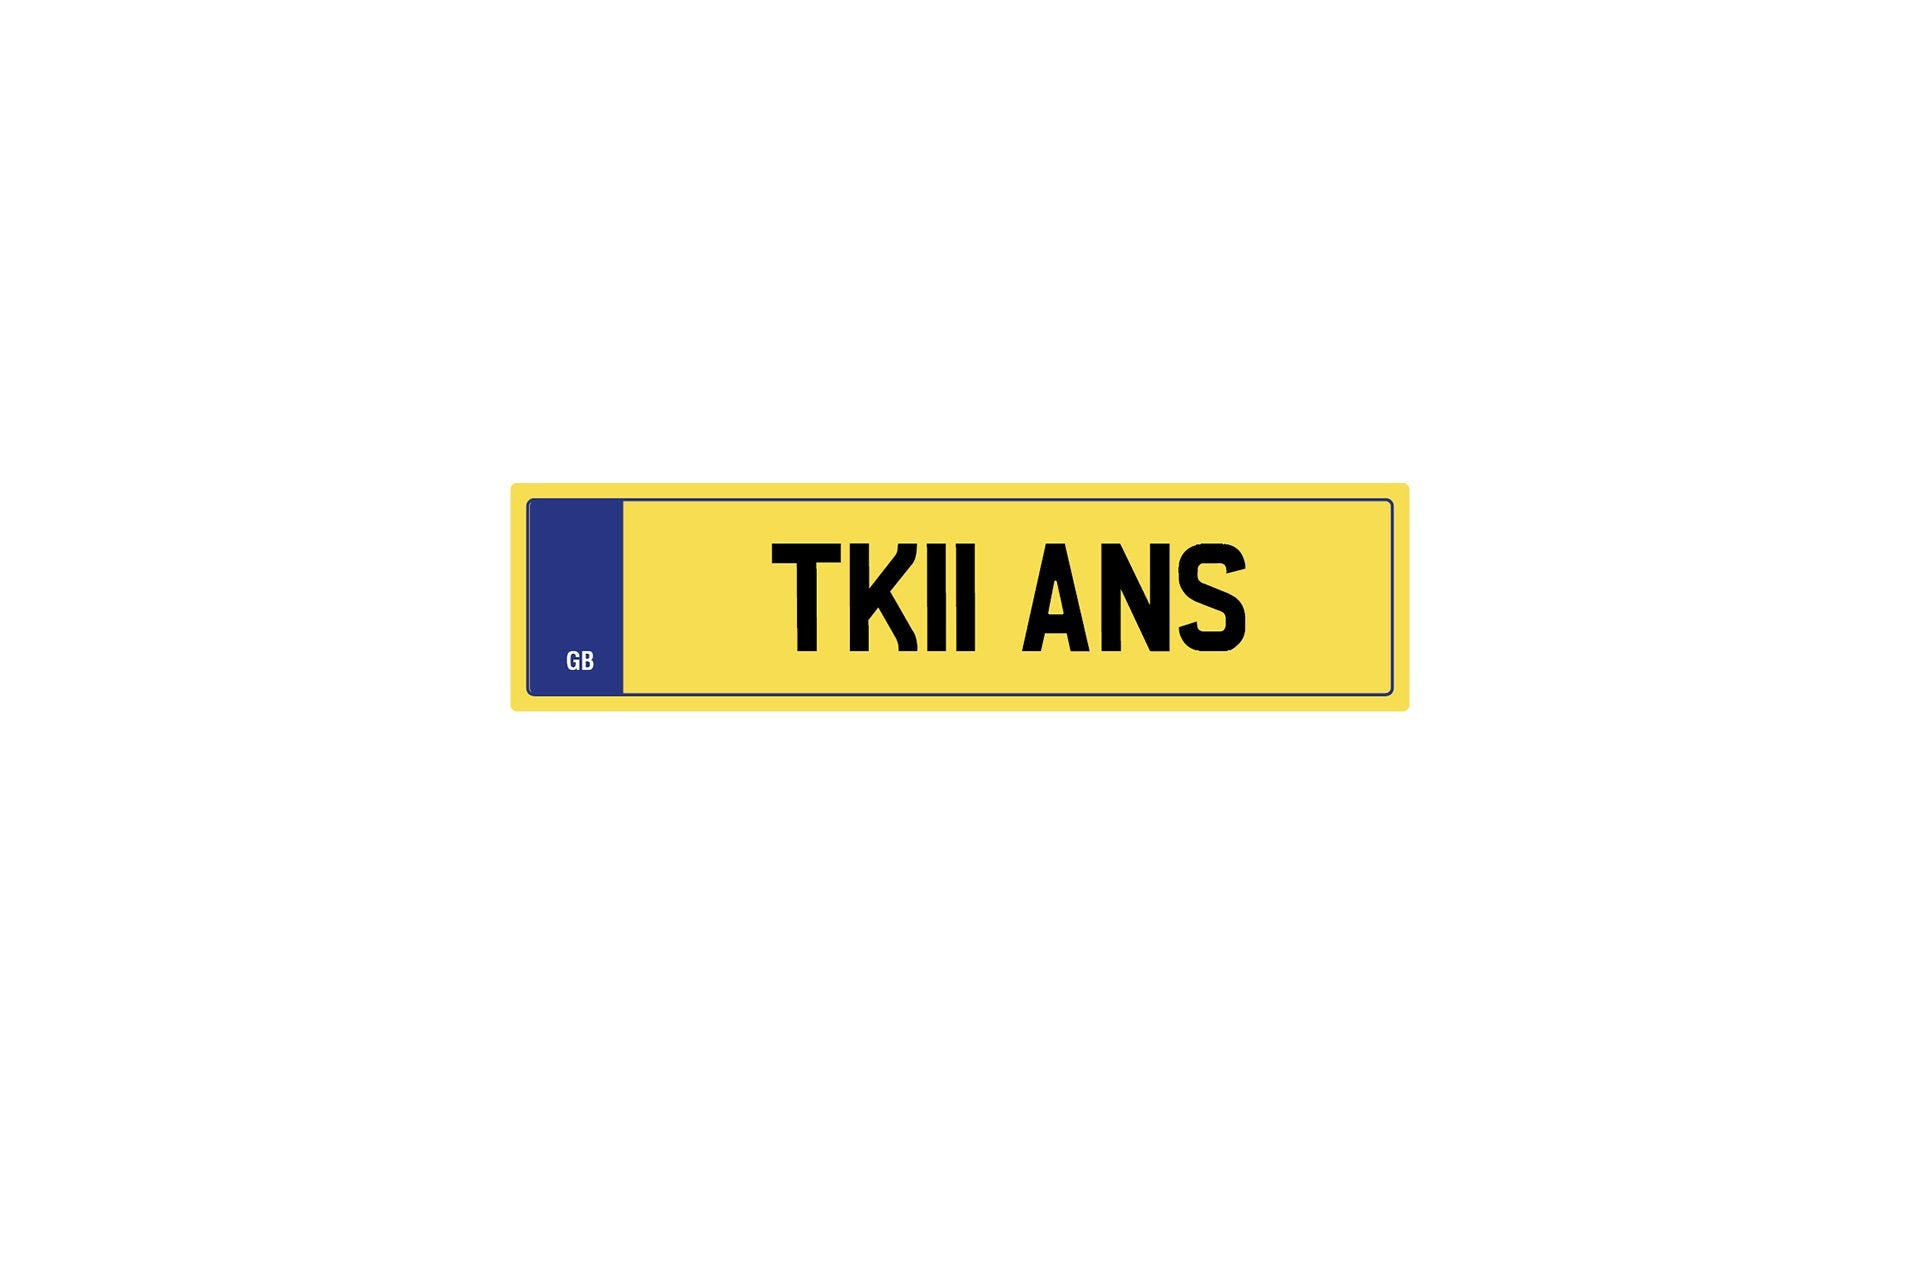 Private Plate Tk11 Ans by Kahn - Image 193